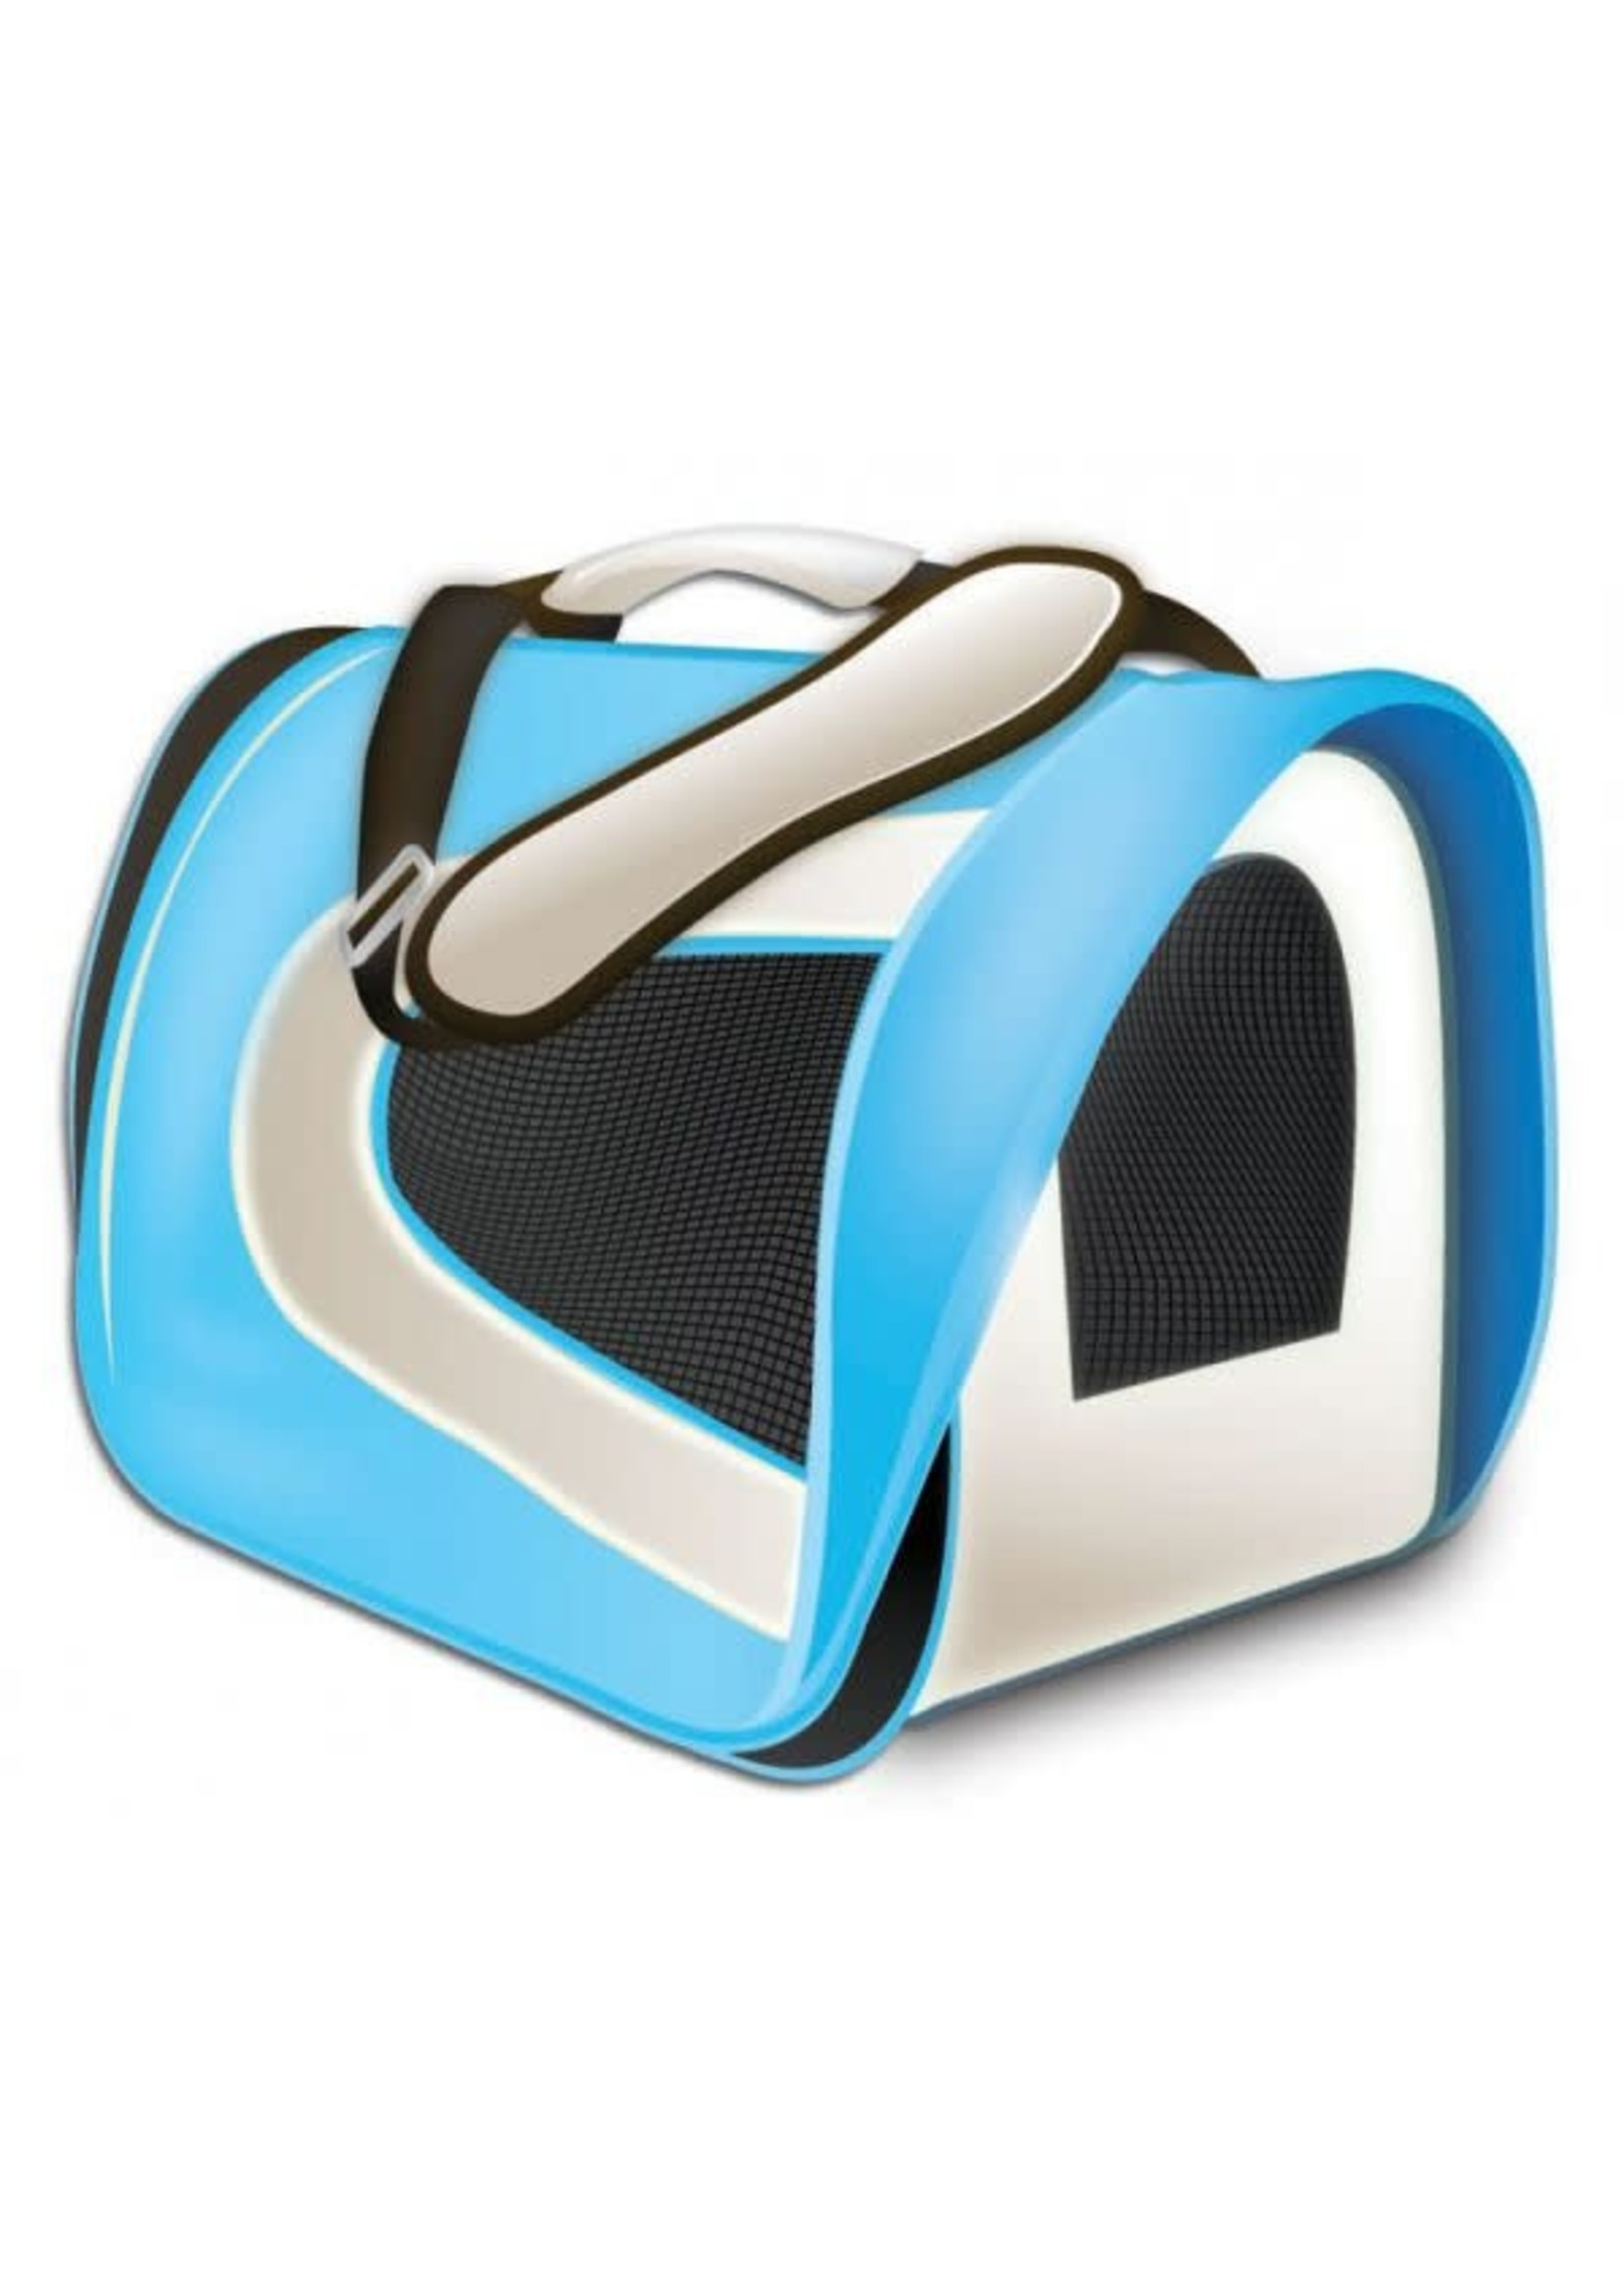 Burgham Tuff Carrier Airline Approved